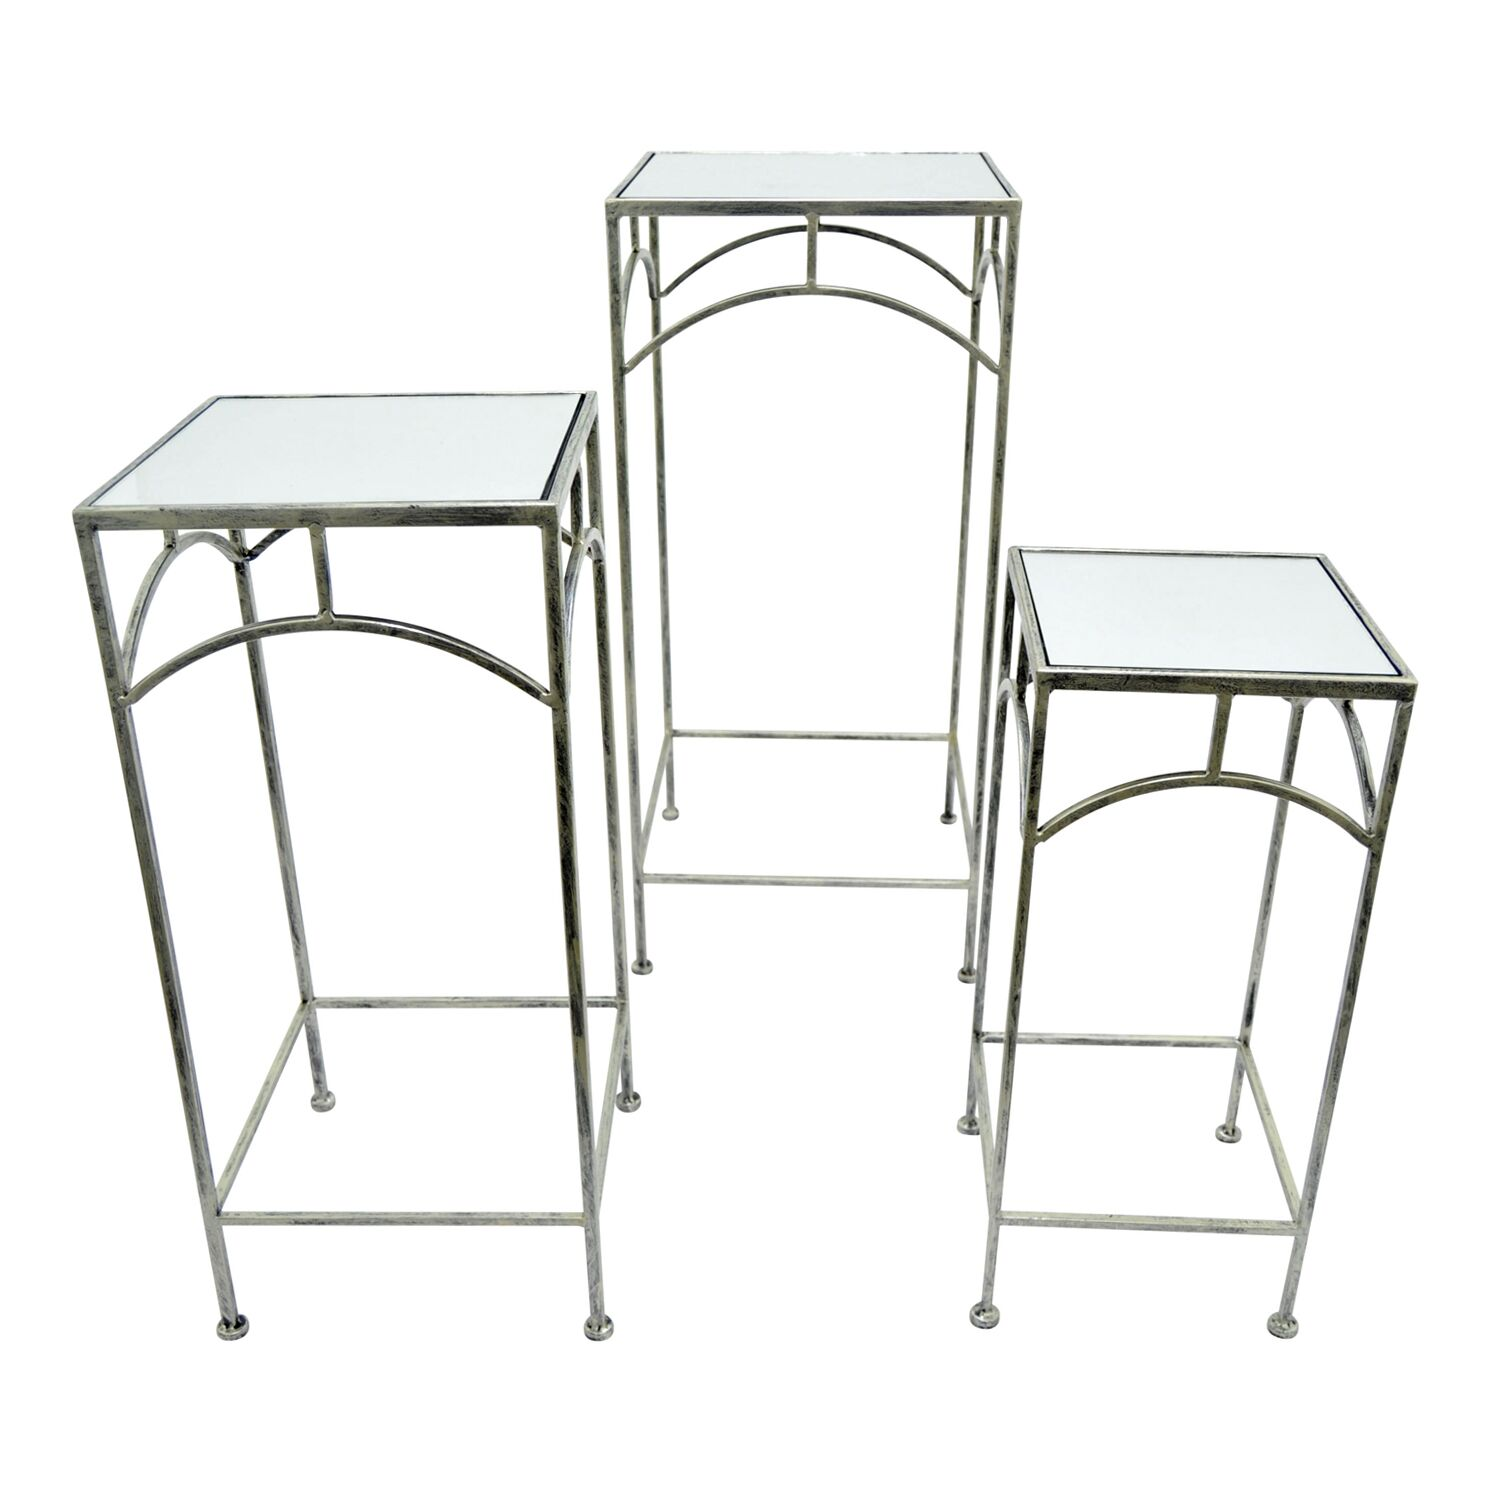 3 Piece Square Nesting Tables